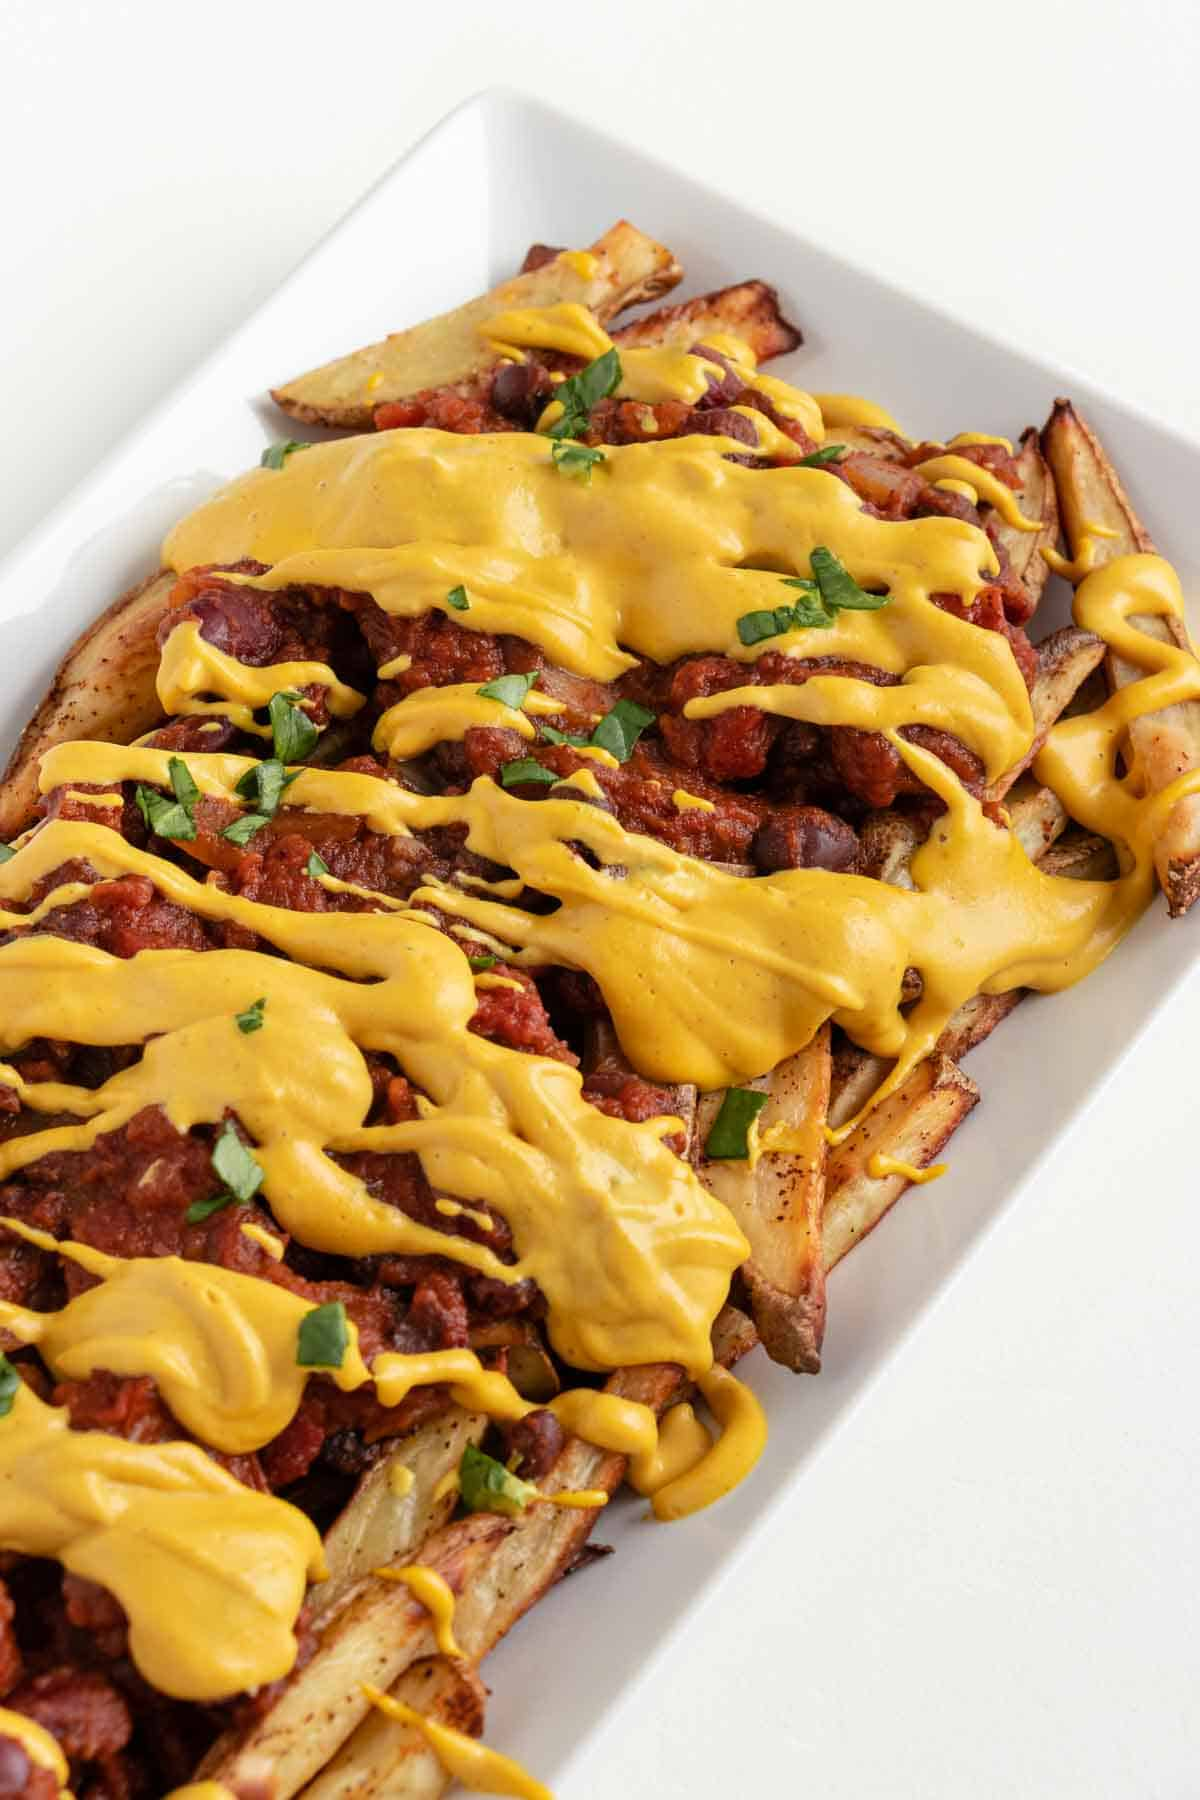 baked french fries topped with vegan chili and nacho cheese